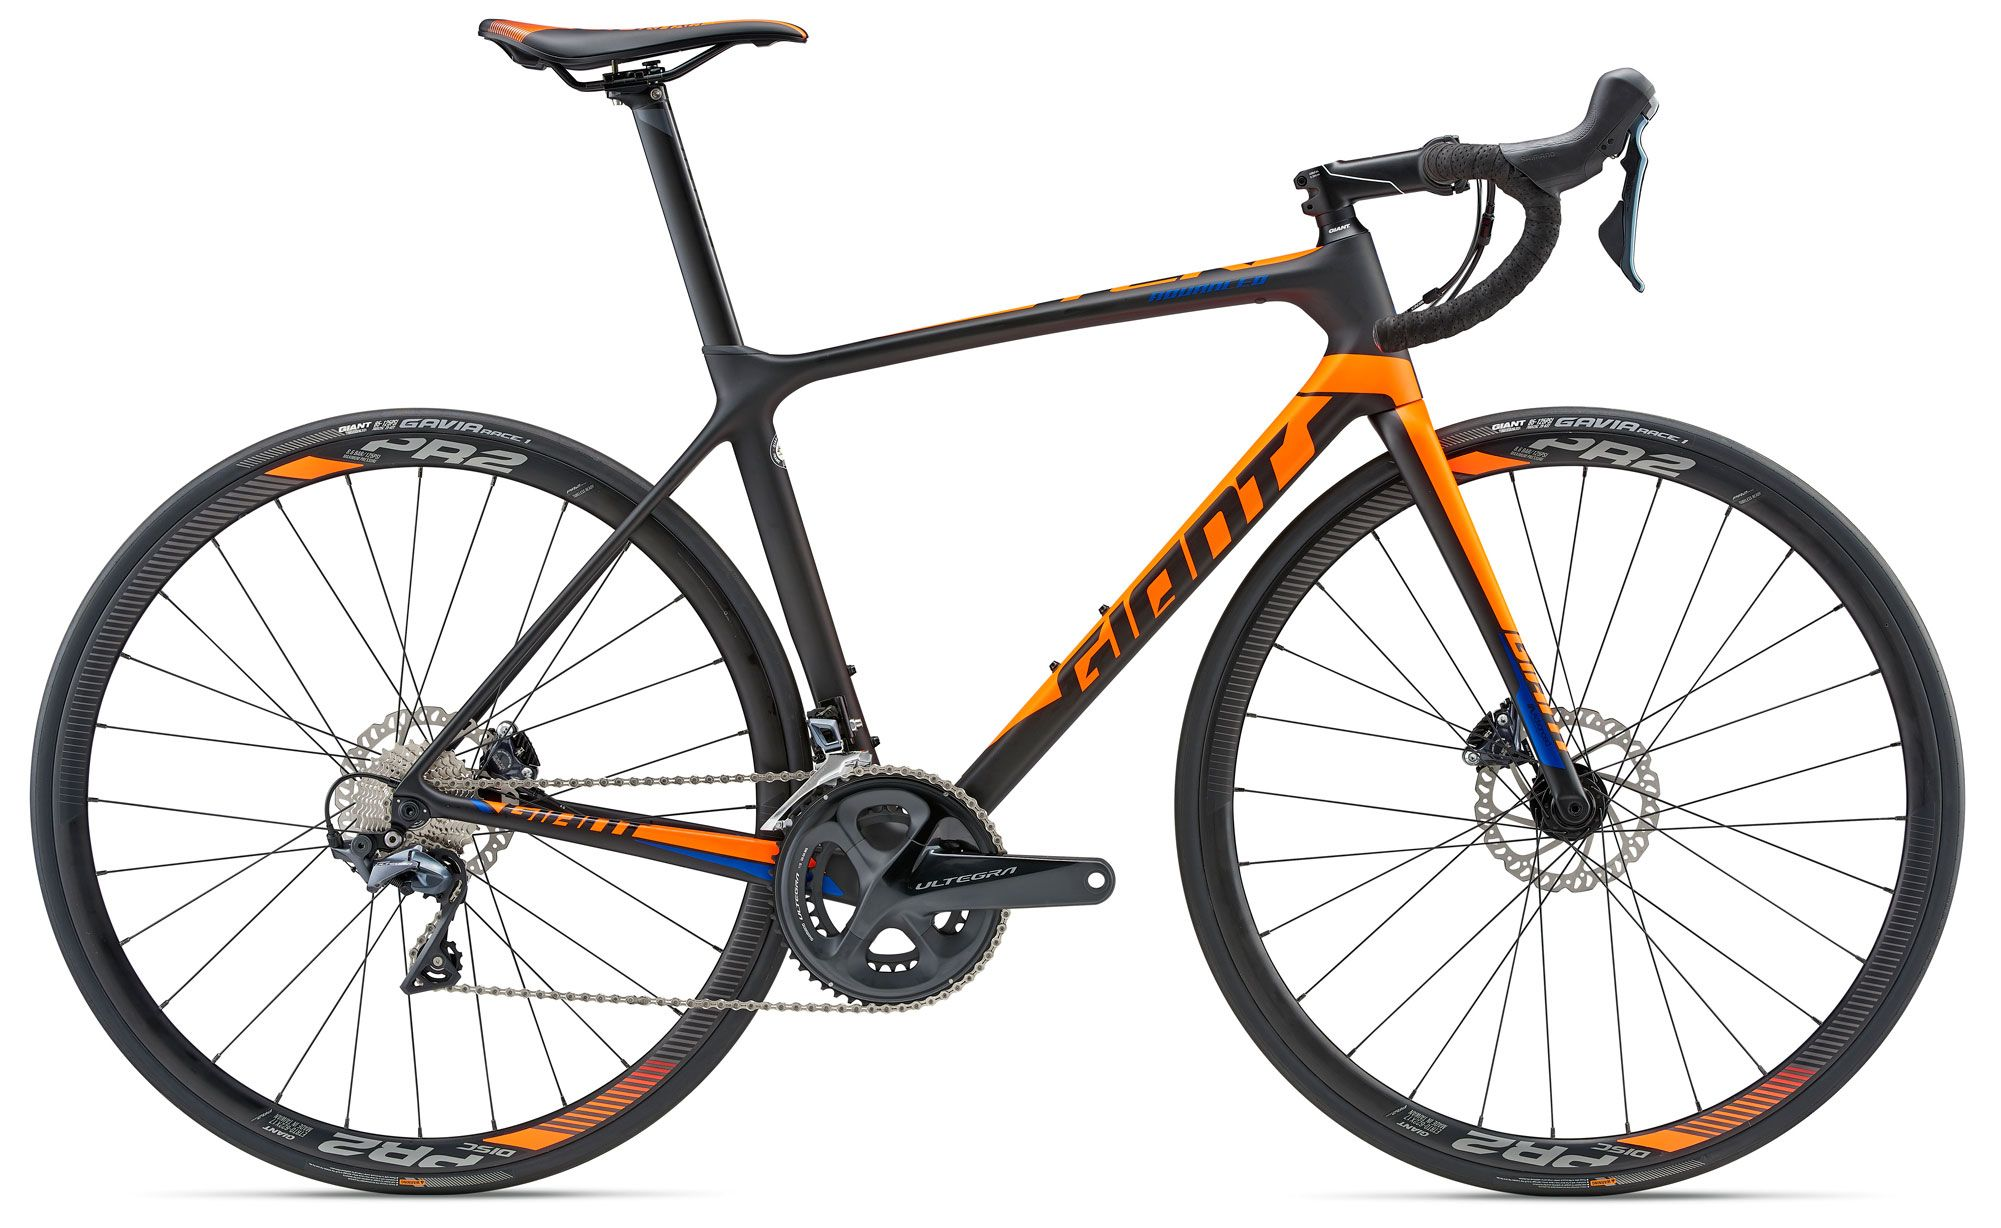 Велосипед Giant TCR Advanced 1 Disc 2018 велосипед giant tcx 1 2013